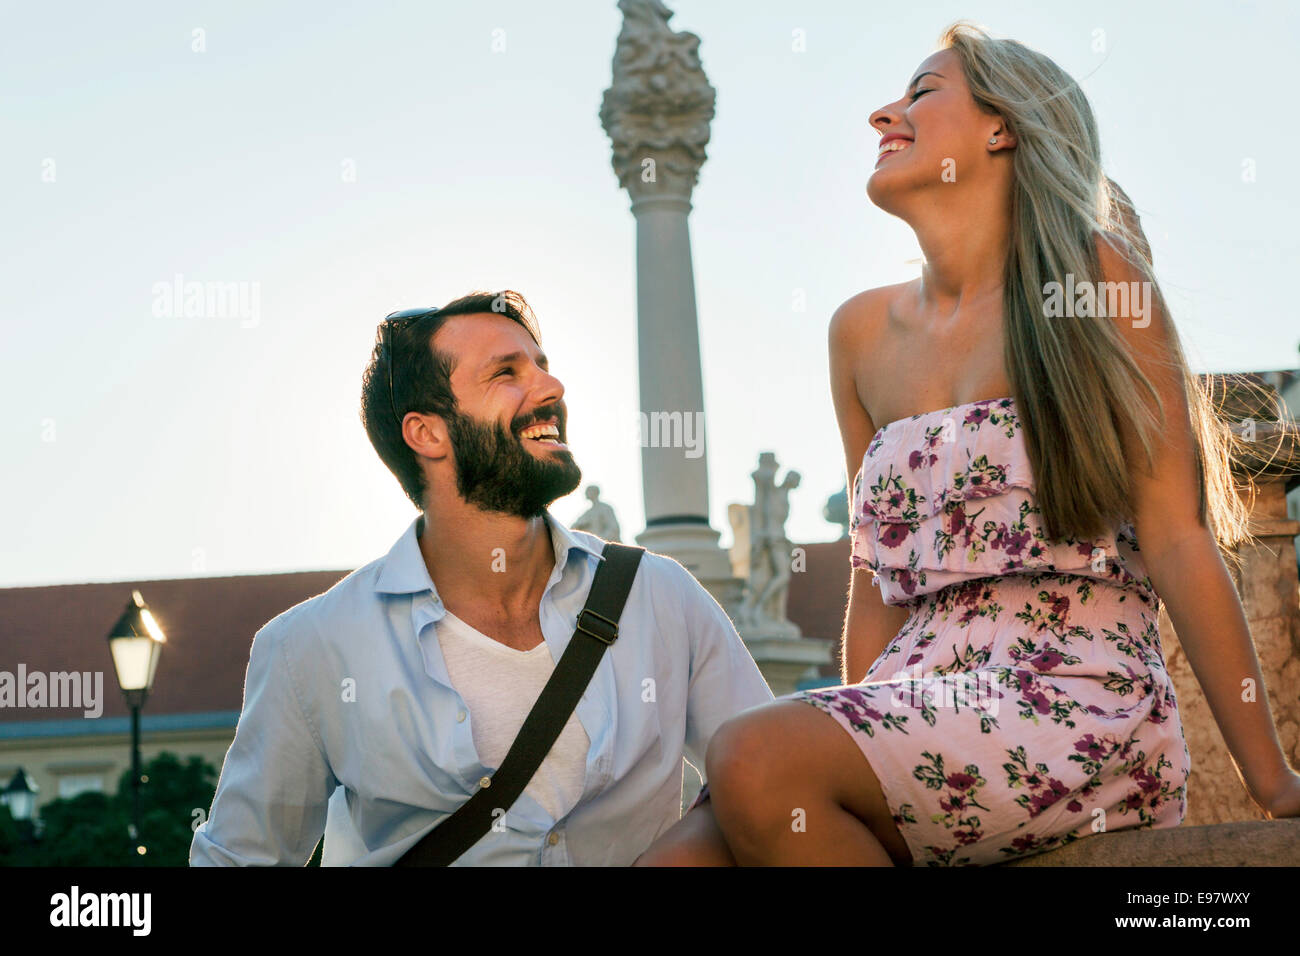 Young couple flirting and laughing by pillar in town - Stock Image